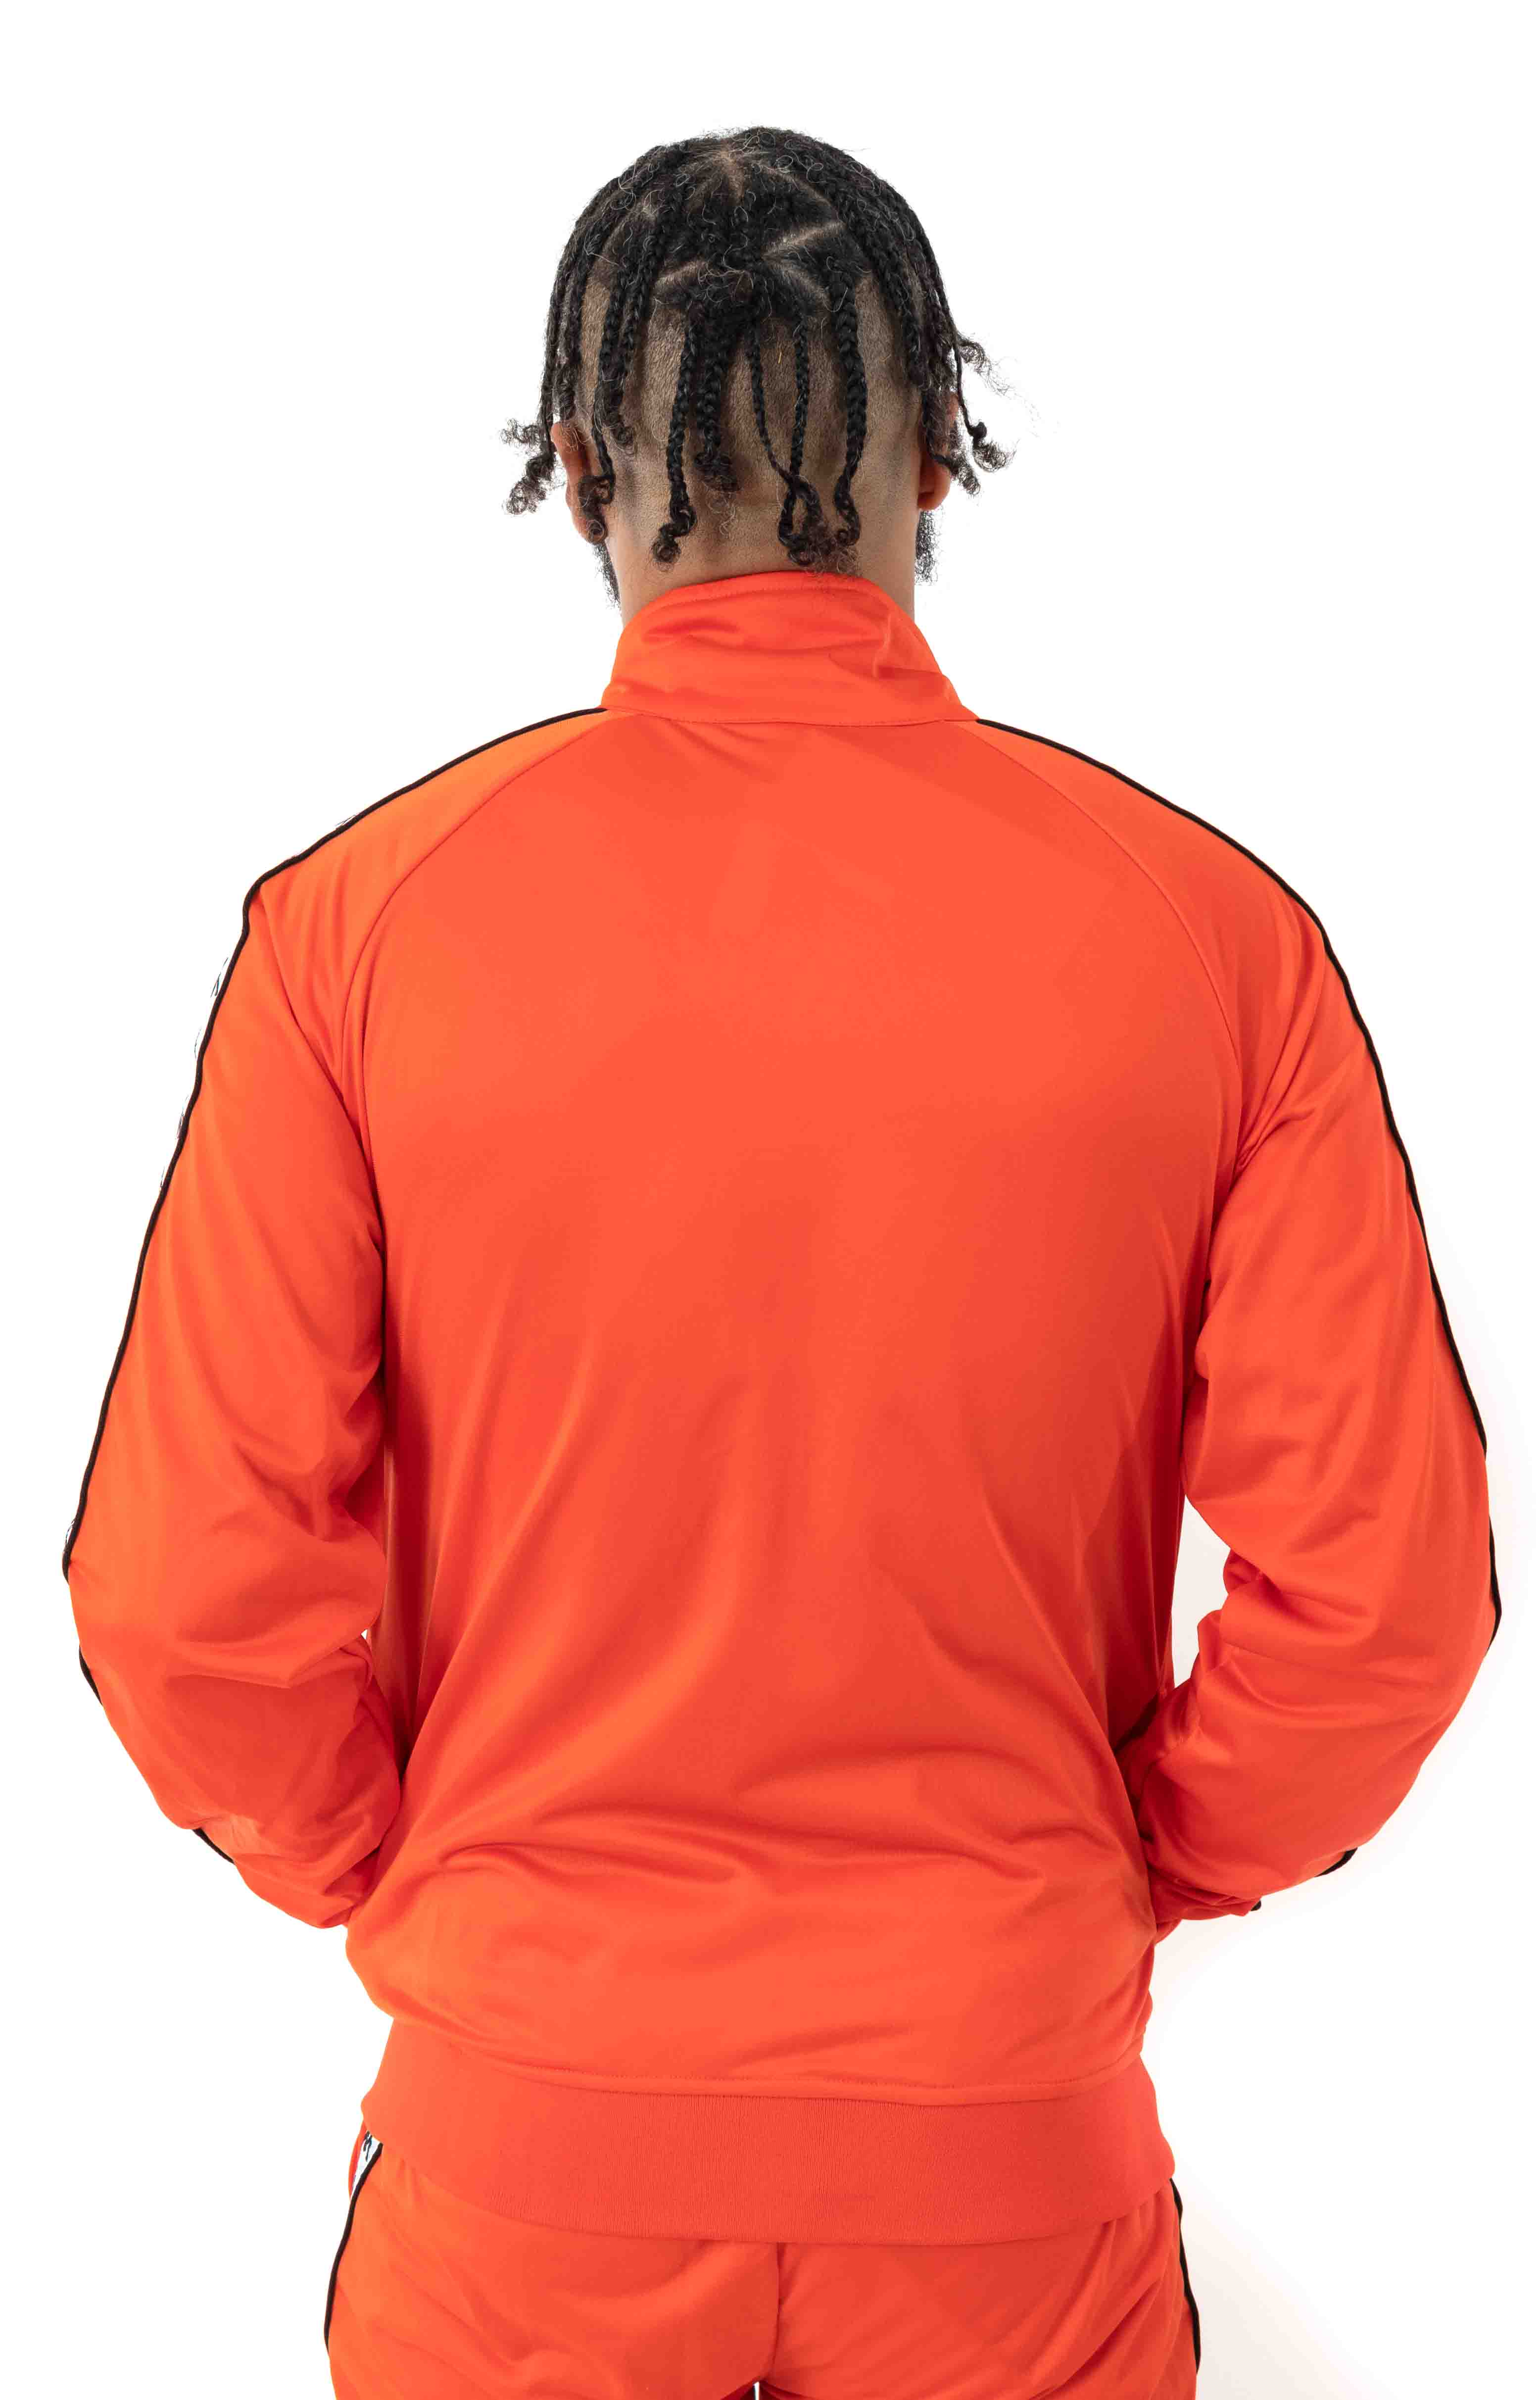 222 Banda Anniston Track Jacket - Orange Flame/White  3